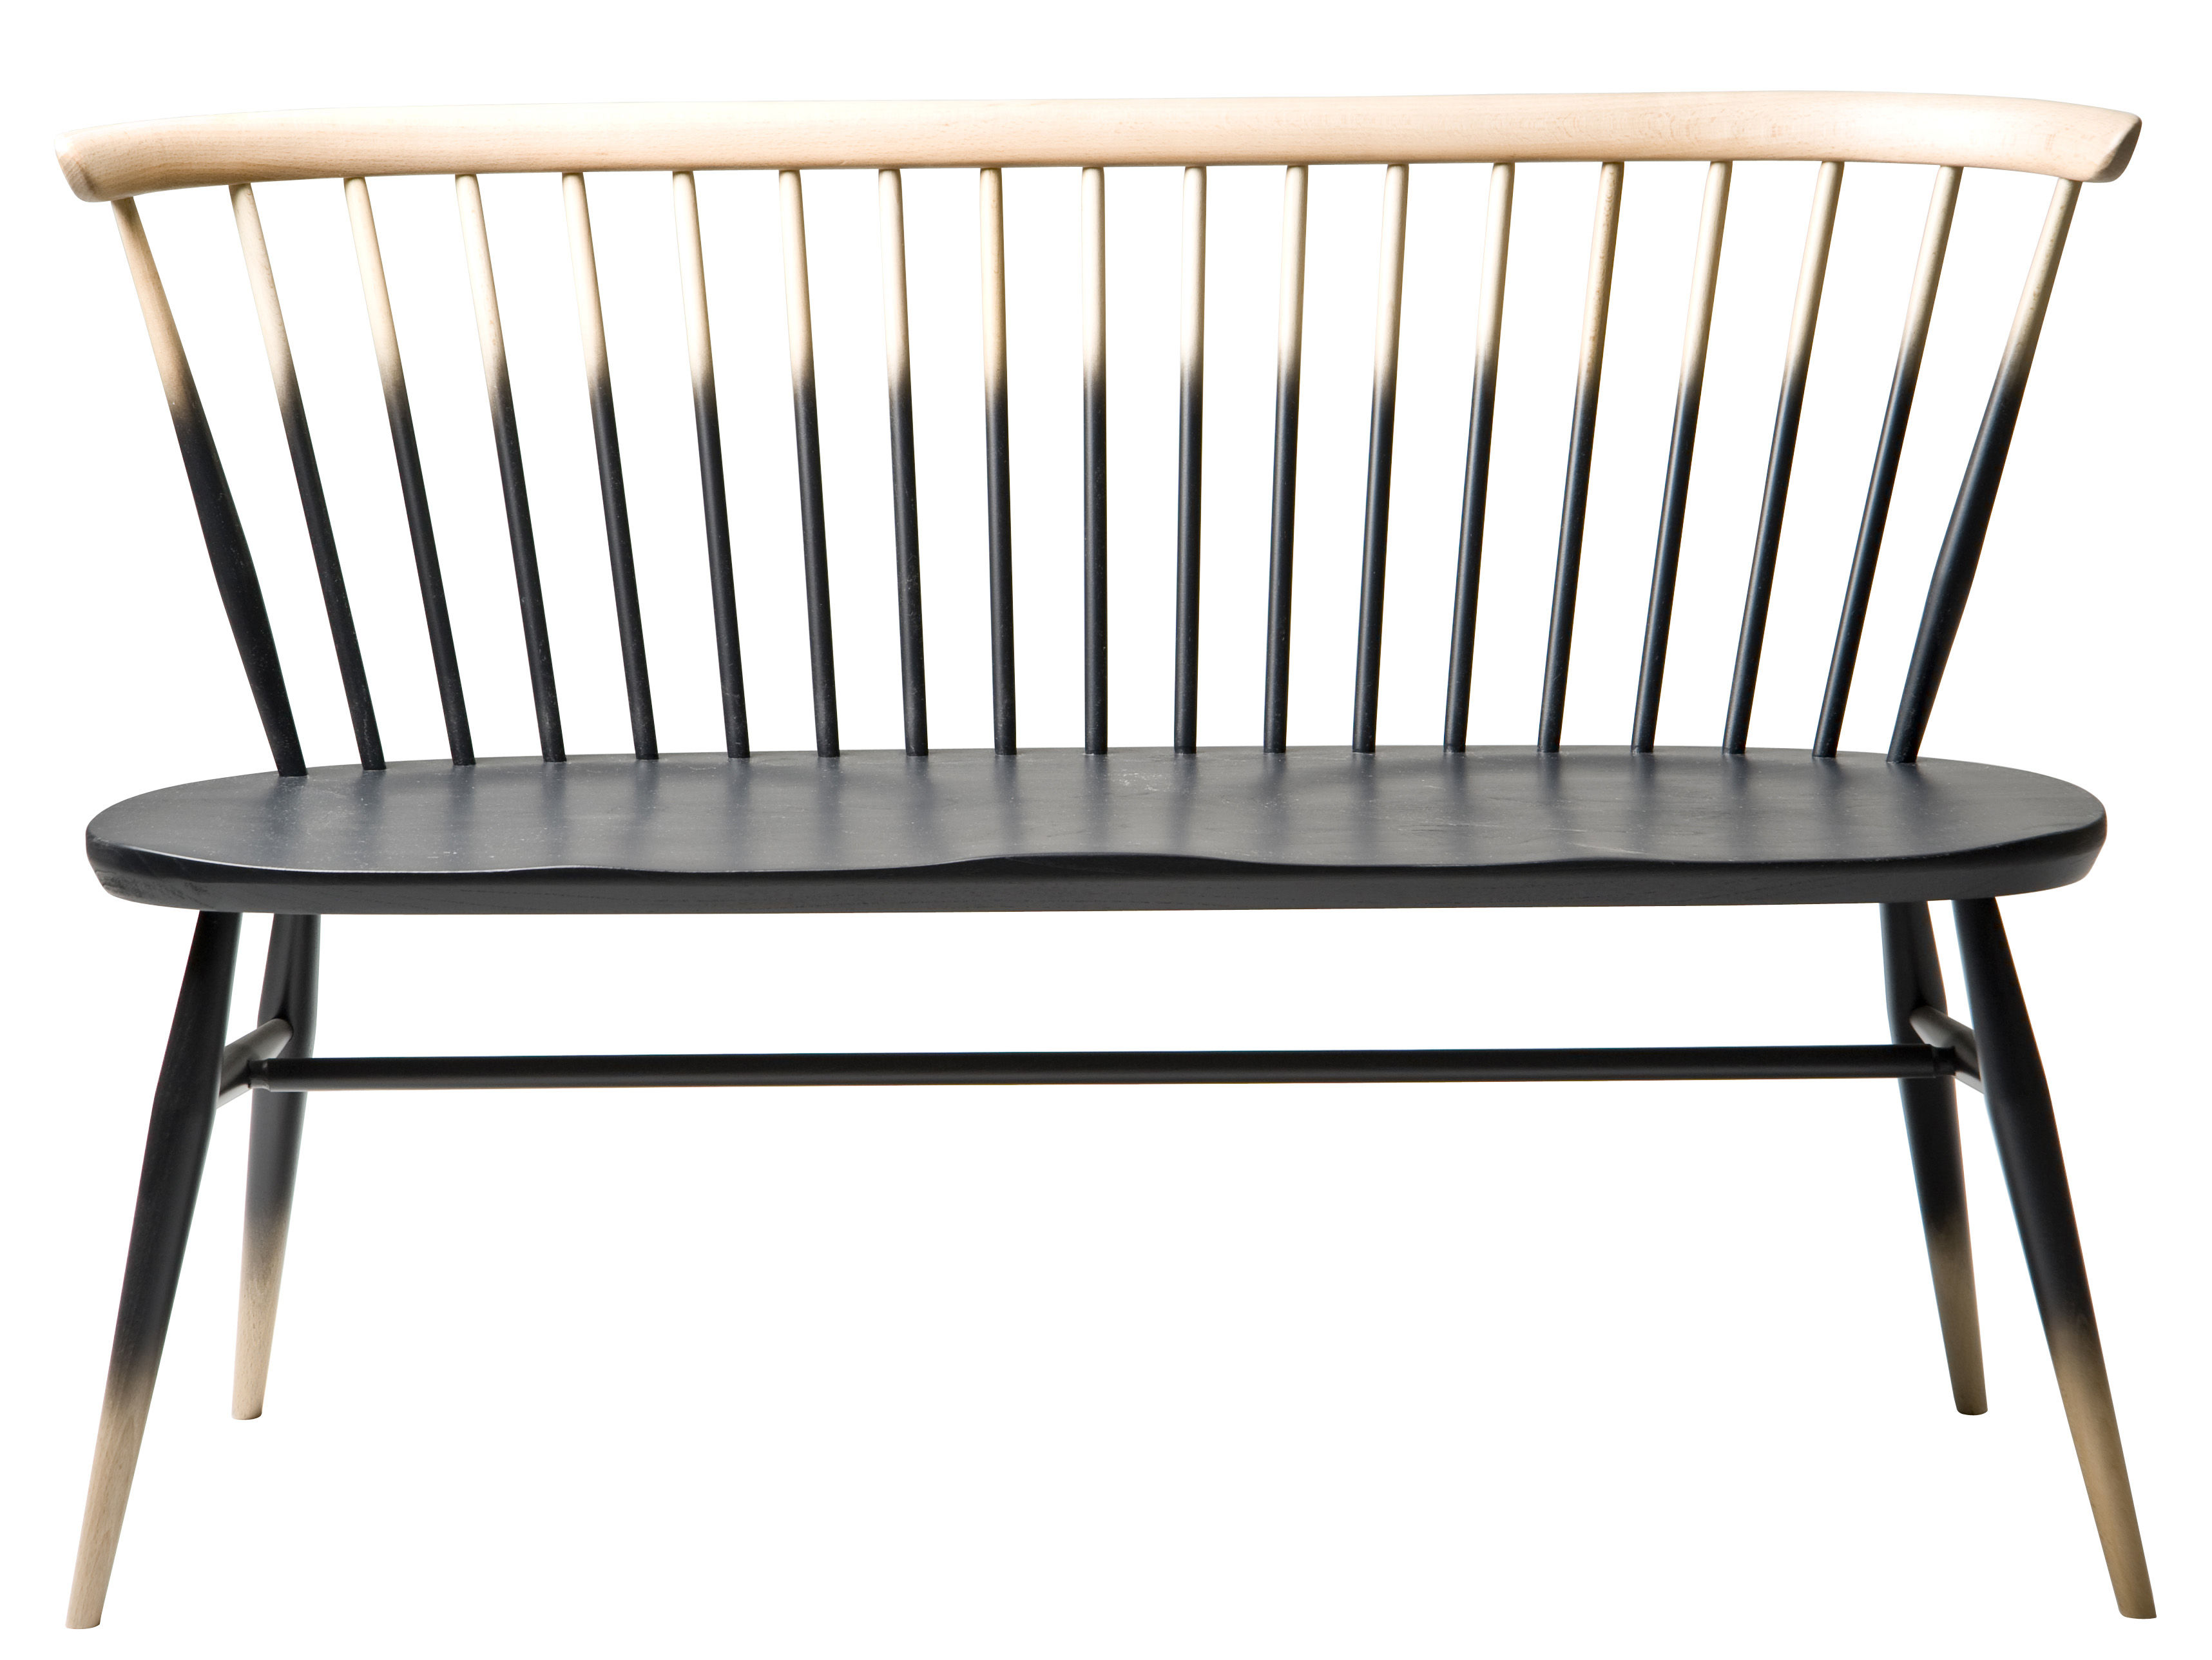 Furniture - Benches - Love Seat Bench with backrest - 117 cm - 1955 Reissue by Ercol - Half black / Wood - Natural beechwood, Solid elm